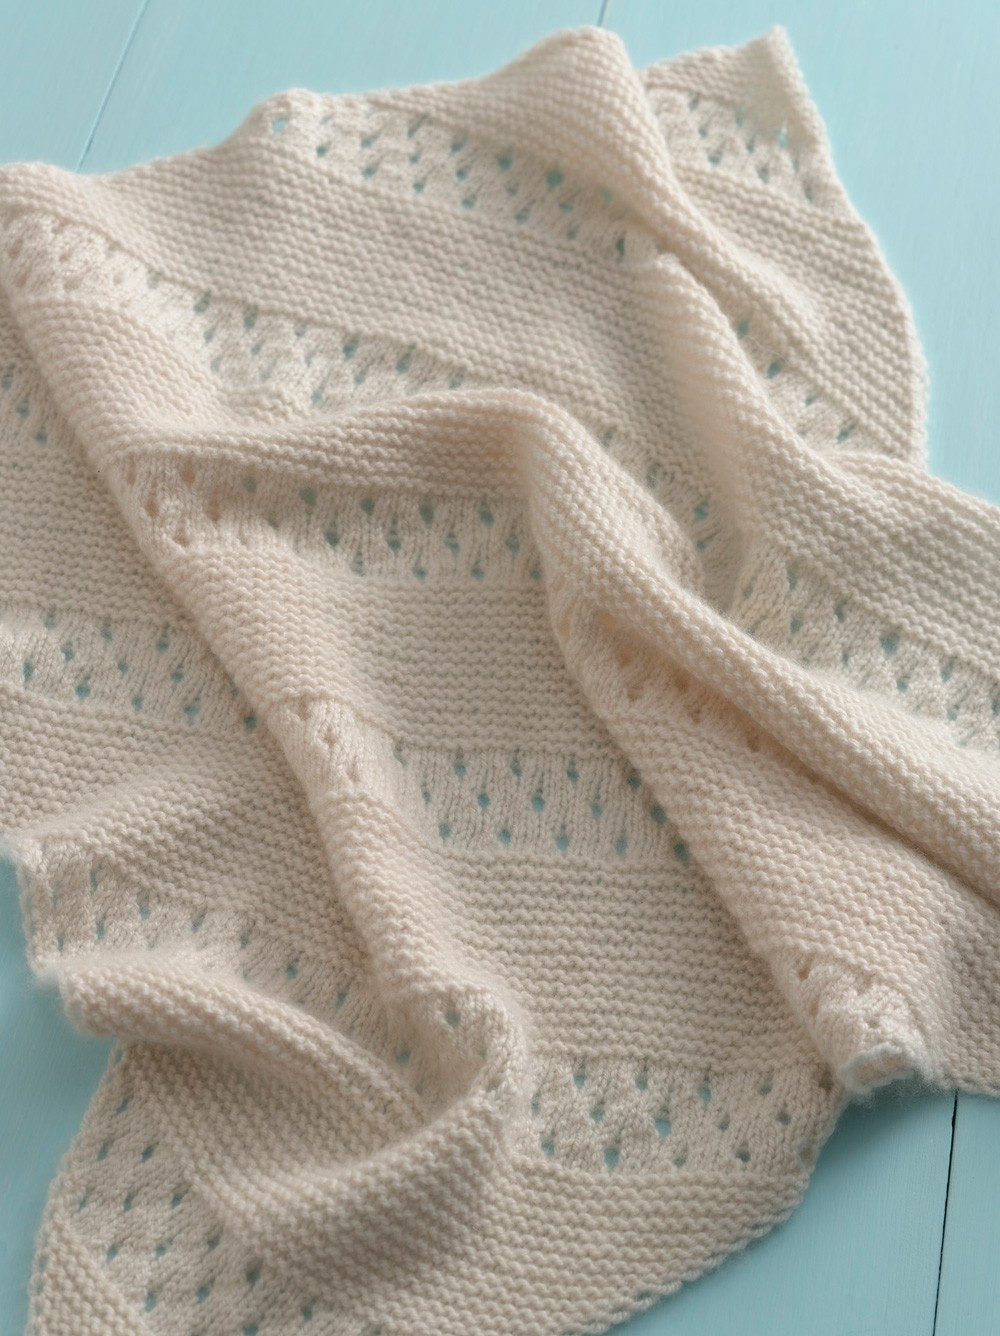 Free Knitting Patterns For Baby Blankets Treasured Heirloom Ba Blanket Free Knit Pattern Styles Idea